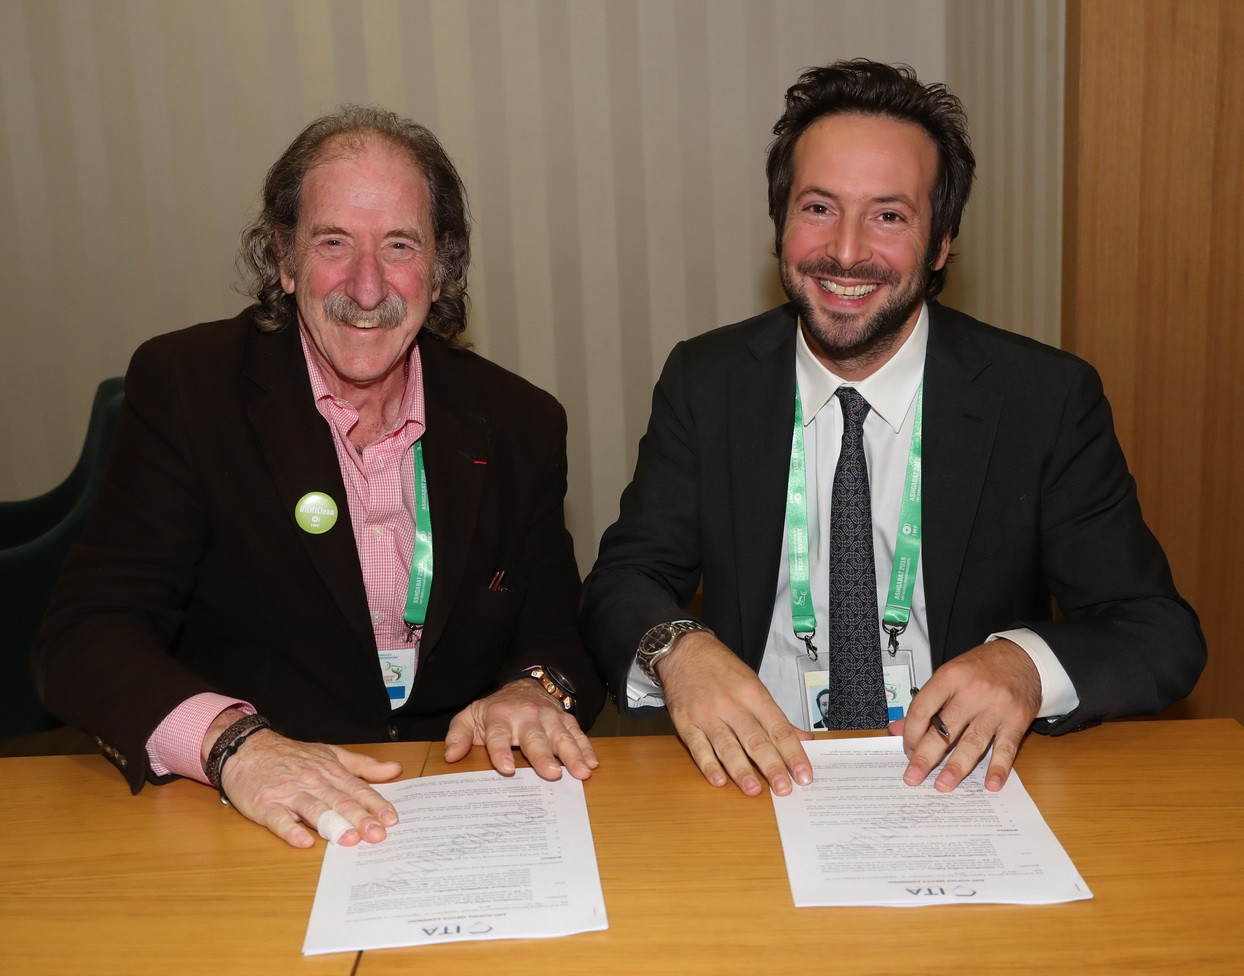 IWF Anti-Doping Commission chairman Patrick Schamasch, left, and ITA director general Benjamin Cohen, right, were among those in attendance at the signing of the partnership ©IWF